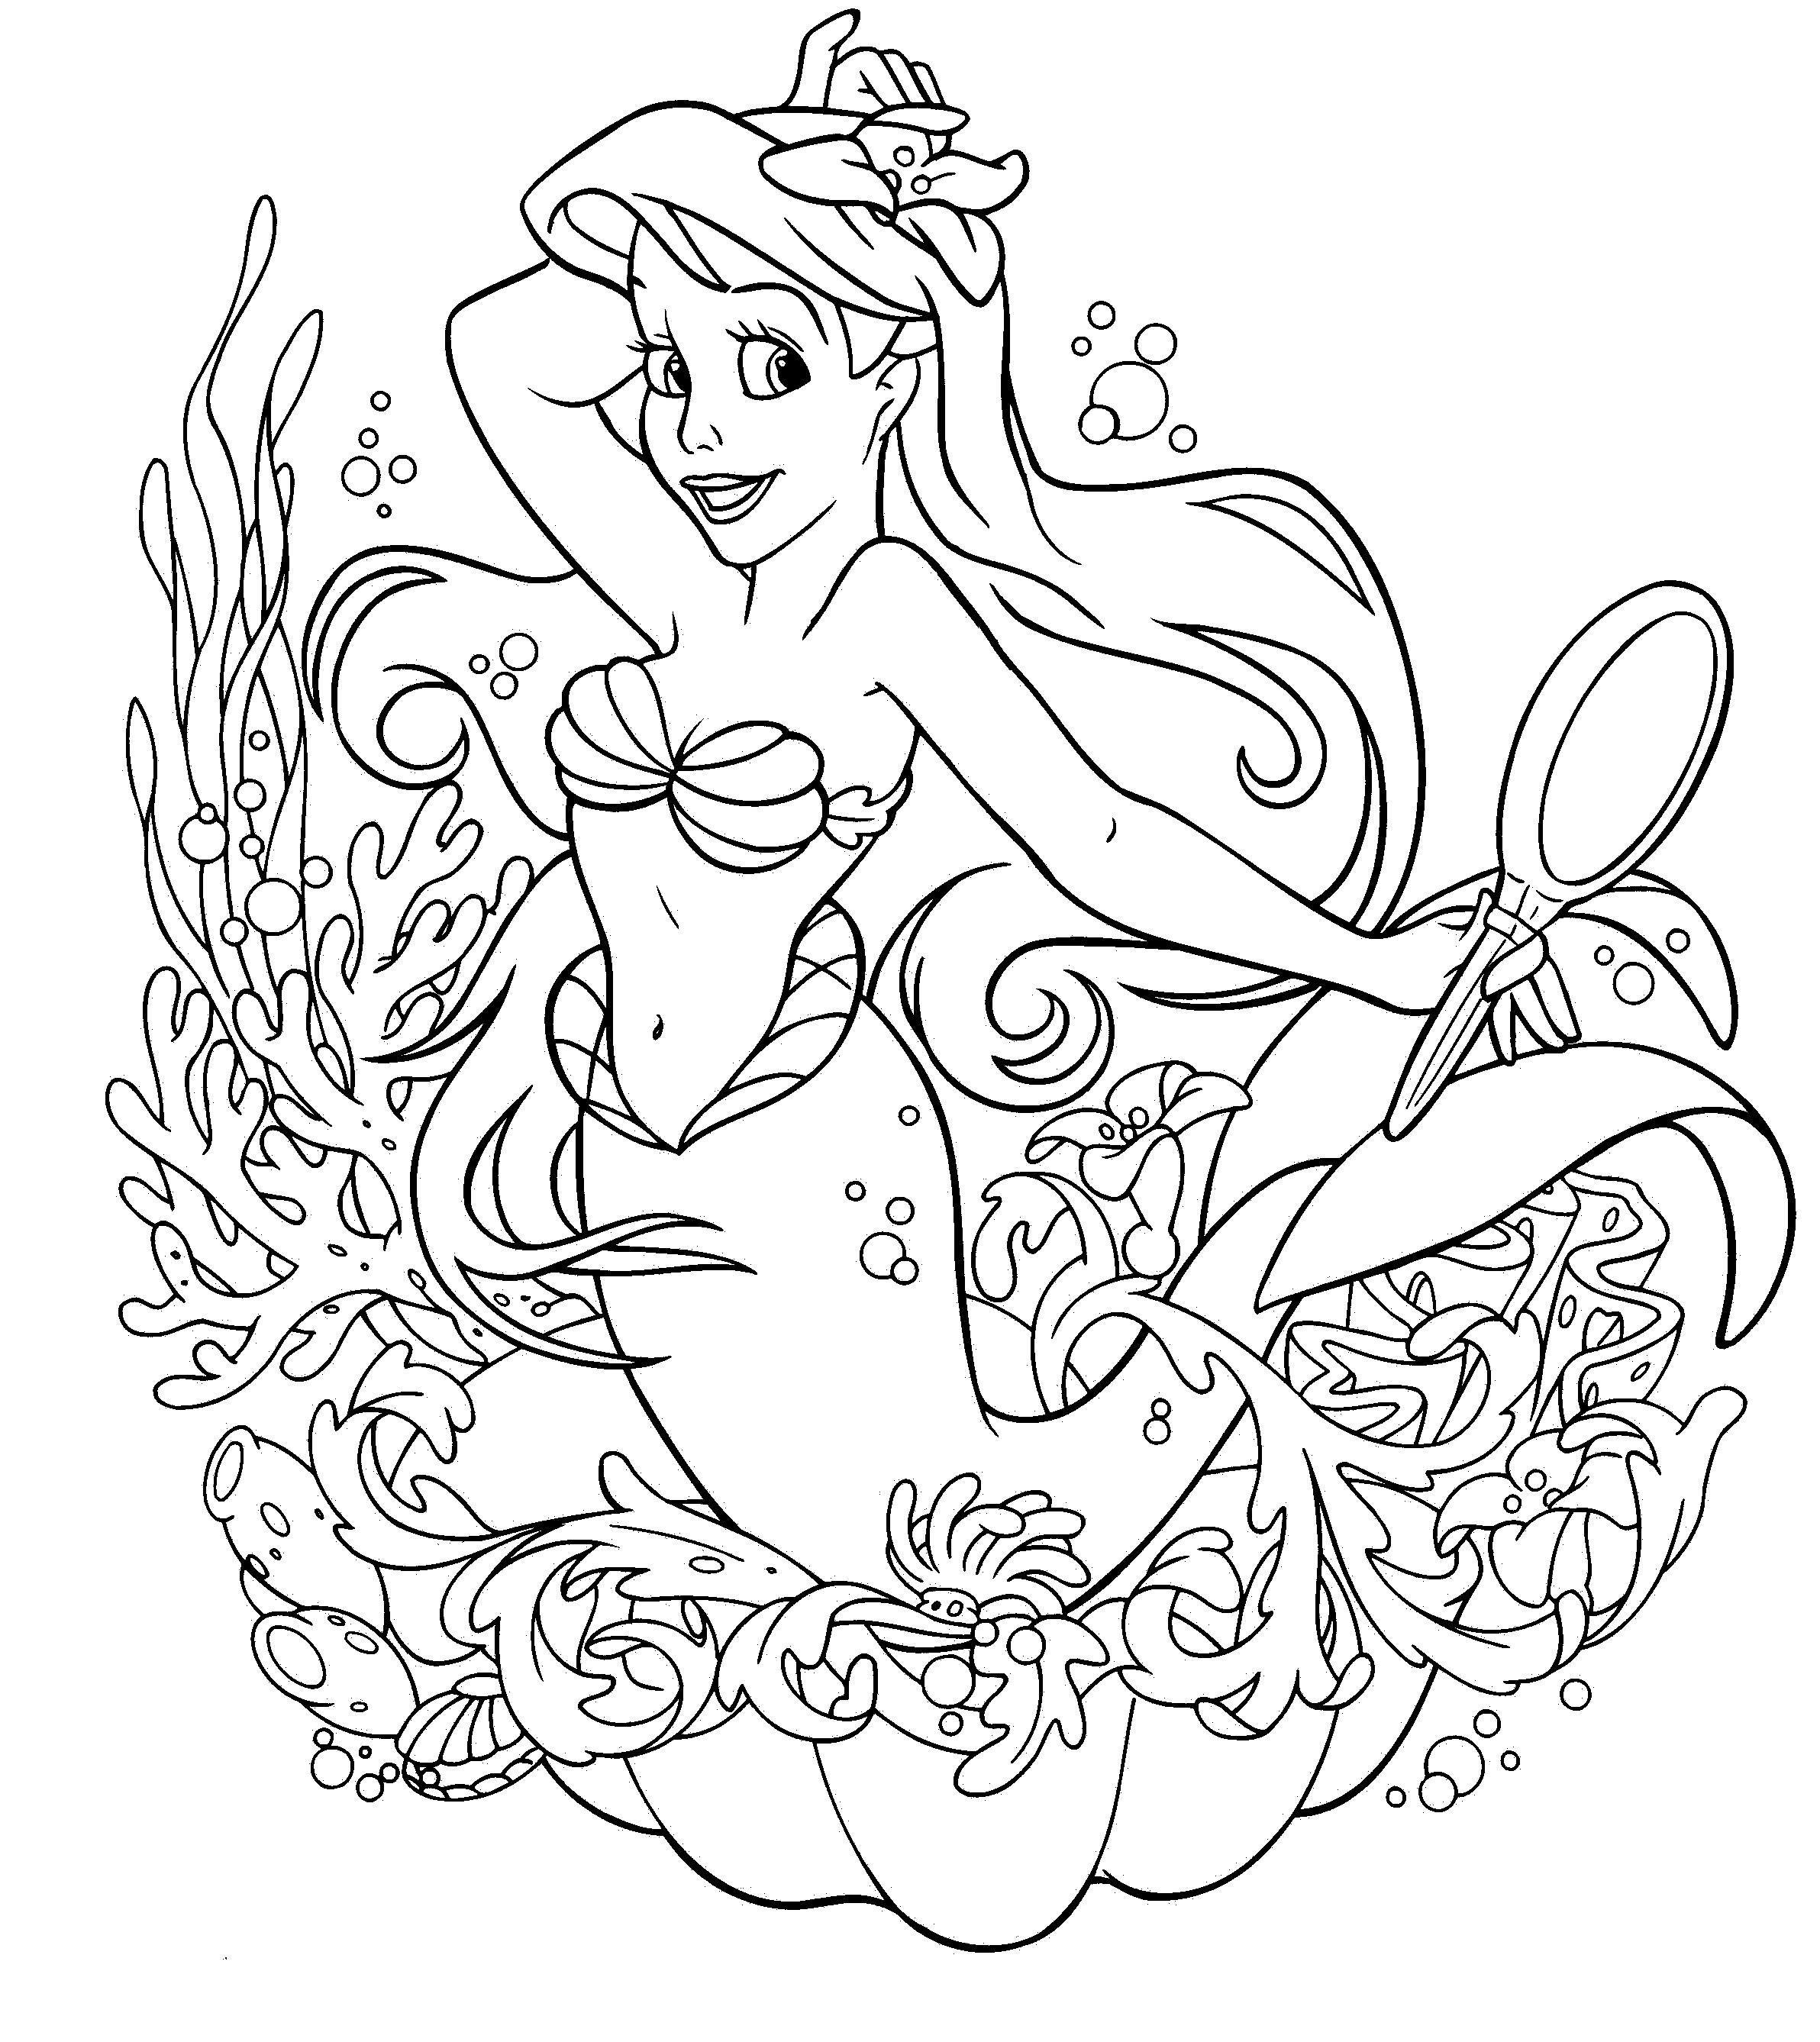 2384x2675 Coloring Pages Printable. Exciting Coloring Print Activity